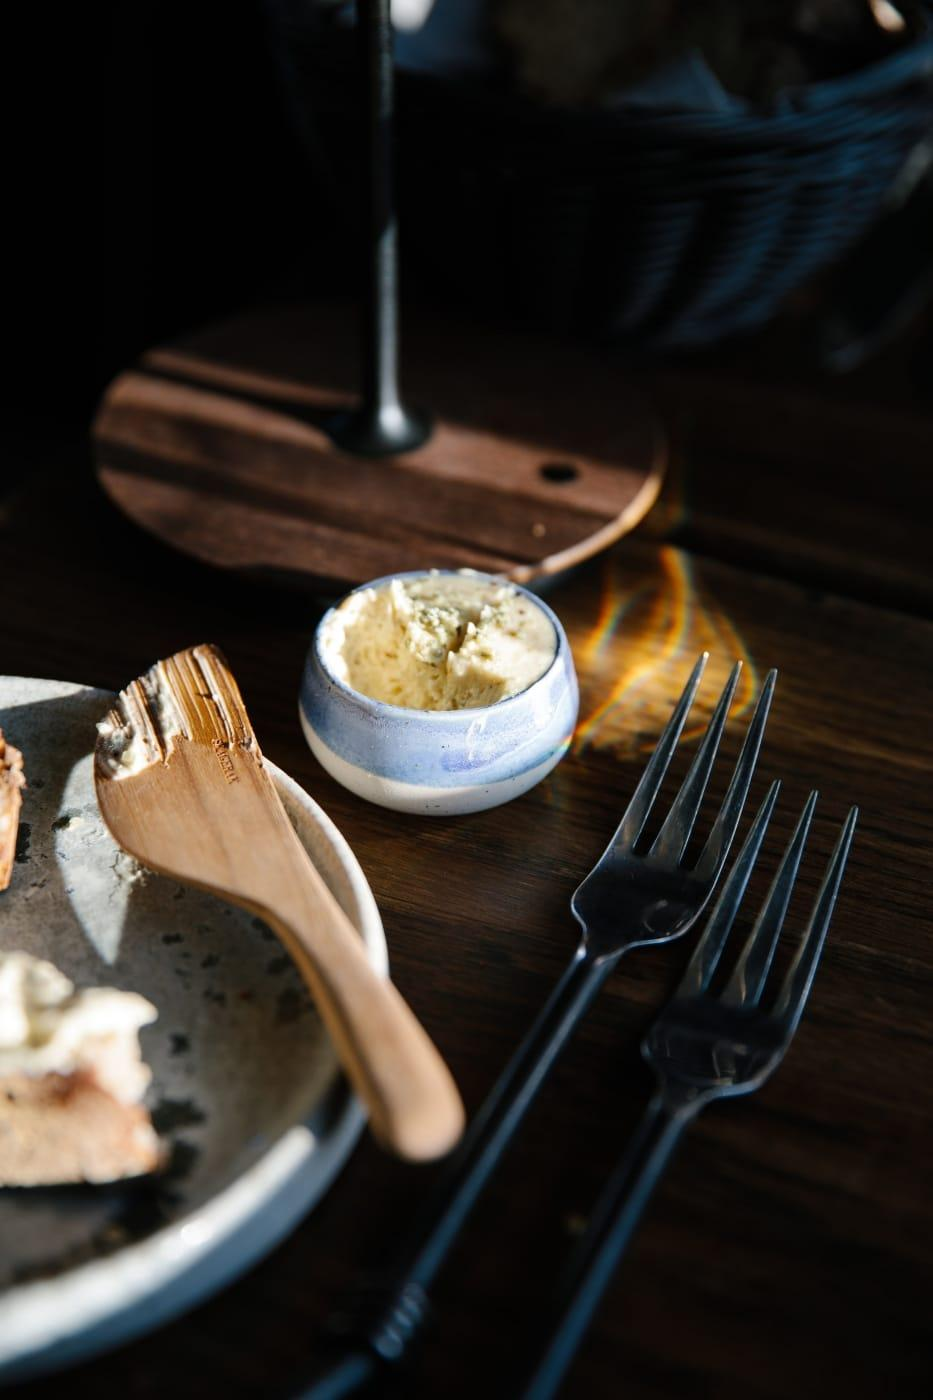 Details while waiting for dinner - homemade butter in the evening light at Ilimanaq restaurant. Photo by Jessie Brinkman Evans